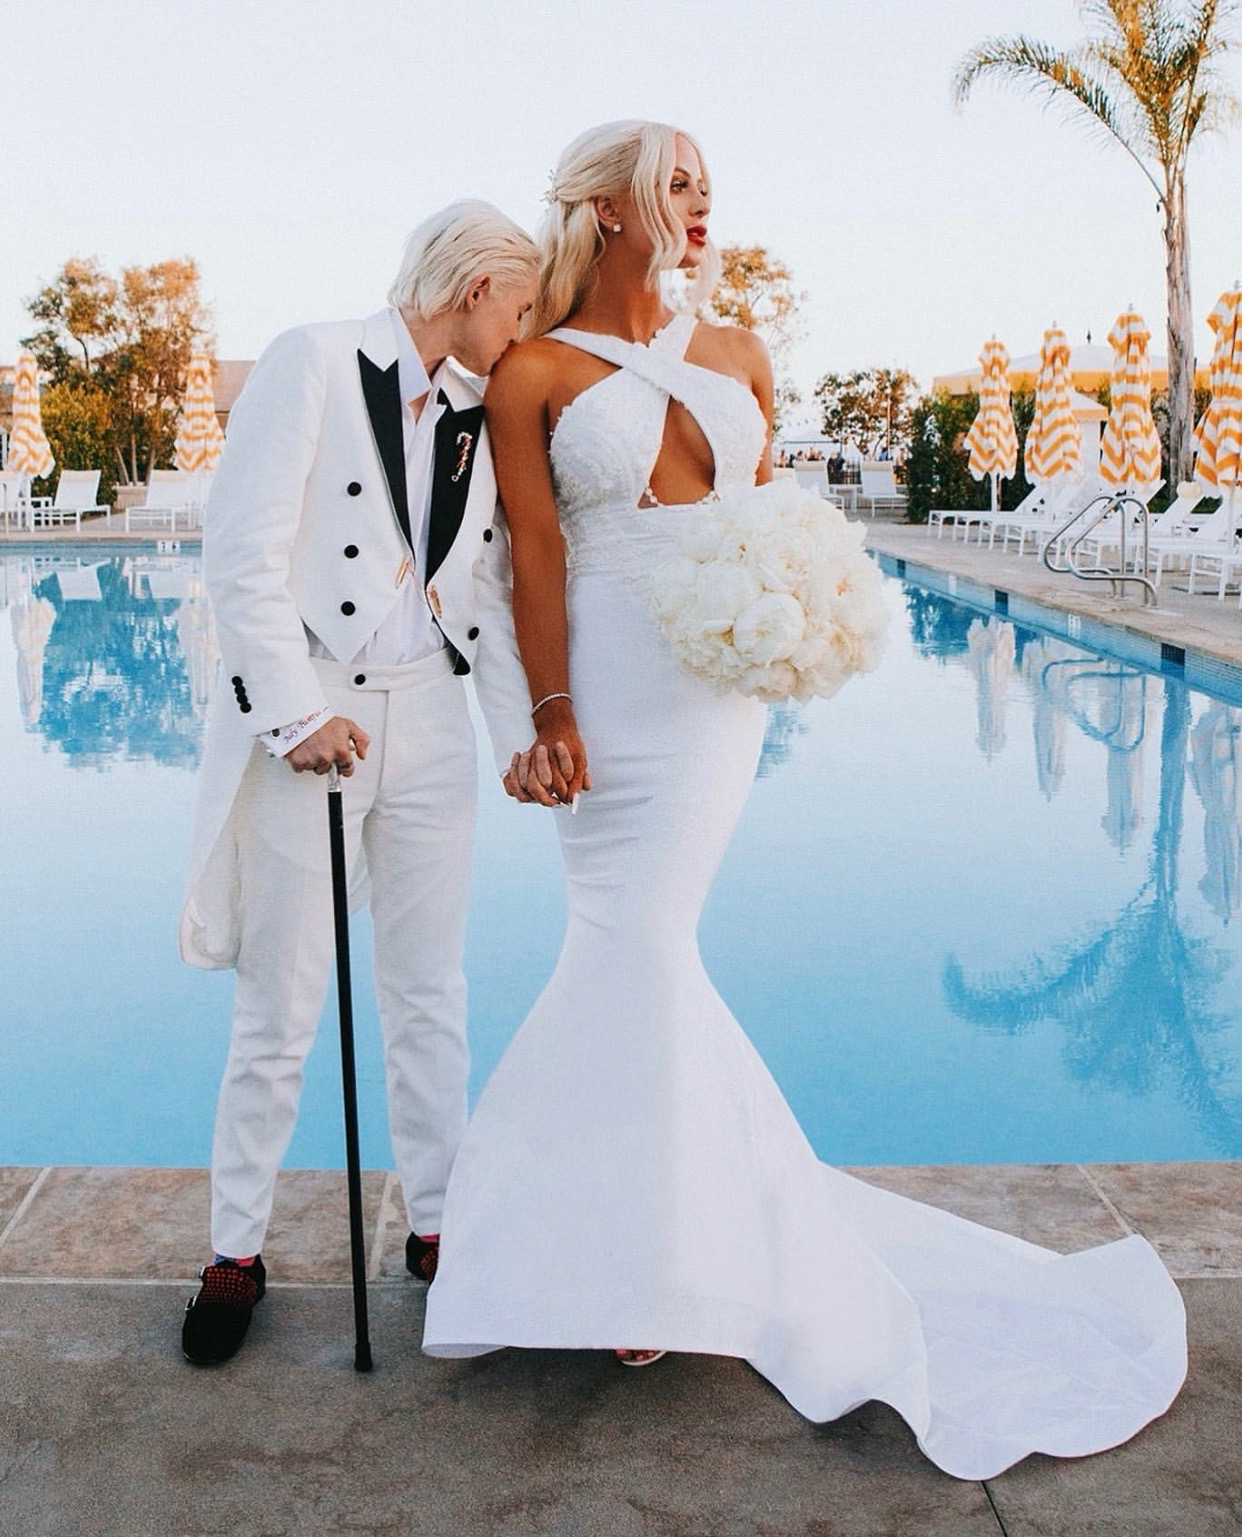 Gigi gorgeous getty & Nats getty - Murray-Reese Family Award Winners